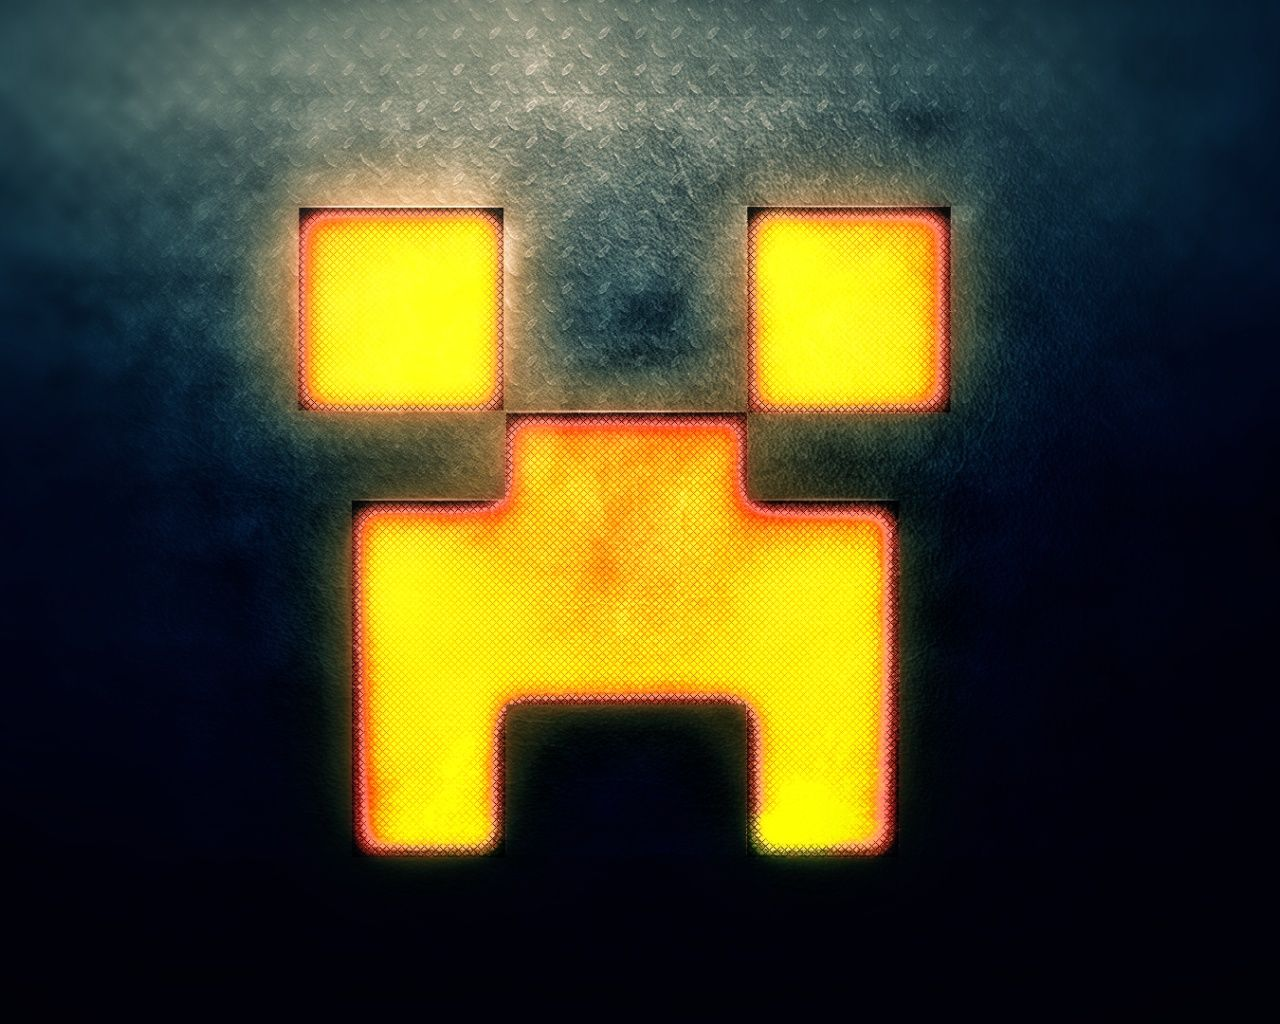 Minecraft Cool Wallpapers Group 1280x1024 39